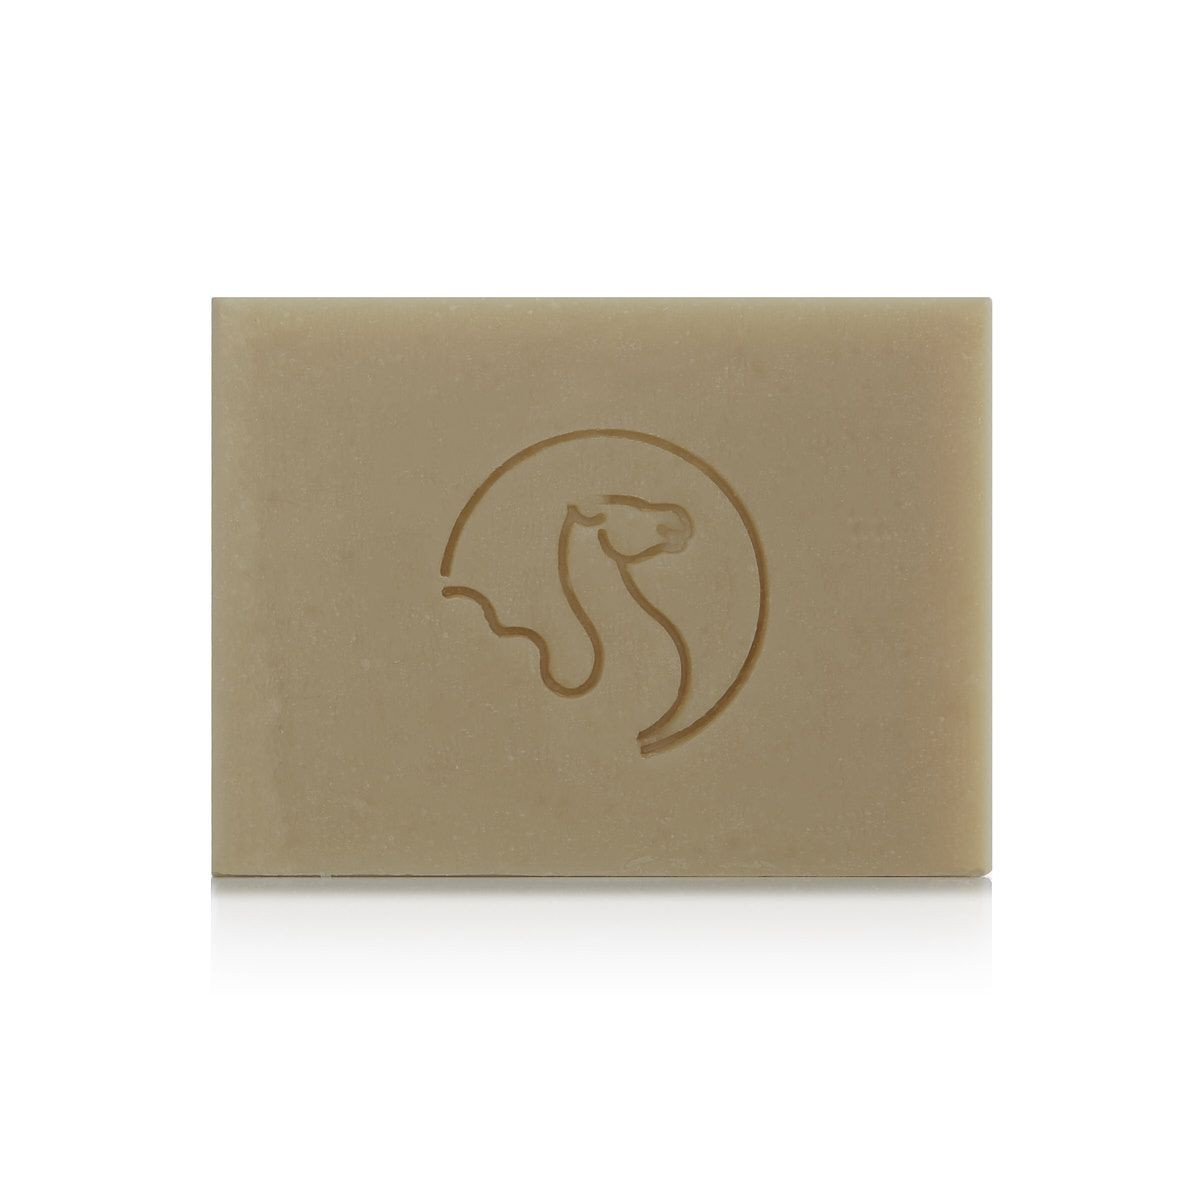 Import Camel Milk Soap Grapefruit & Patchouli - Heritage Collection from United Arab Emirates